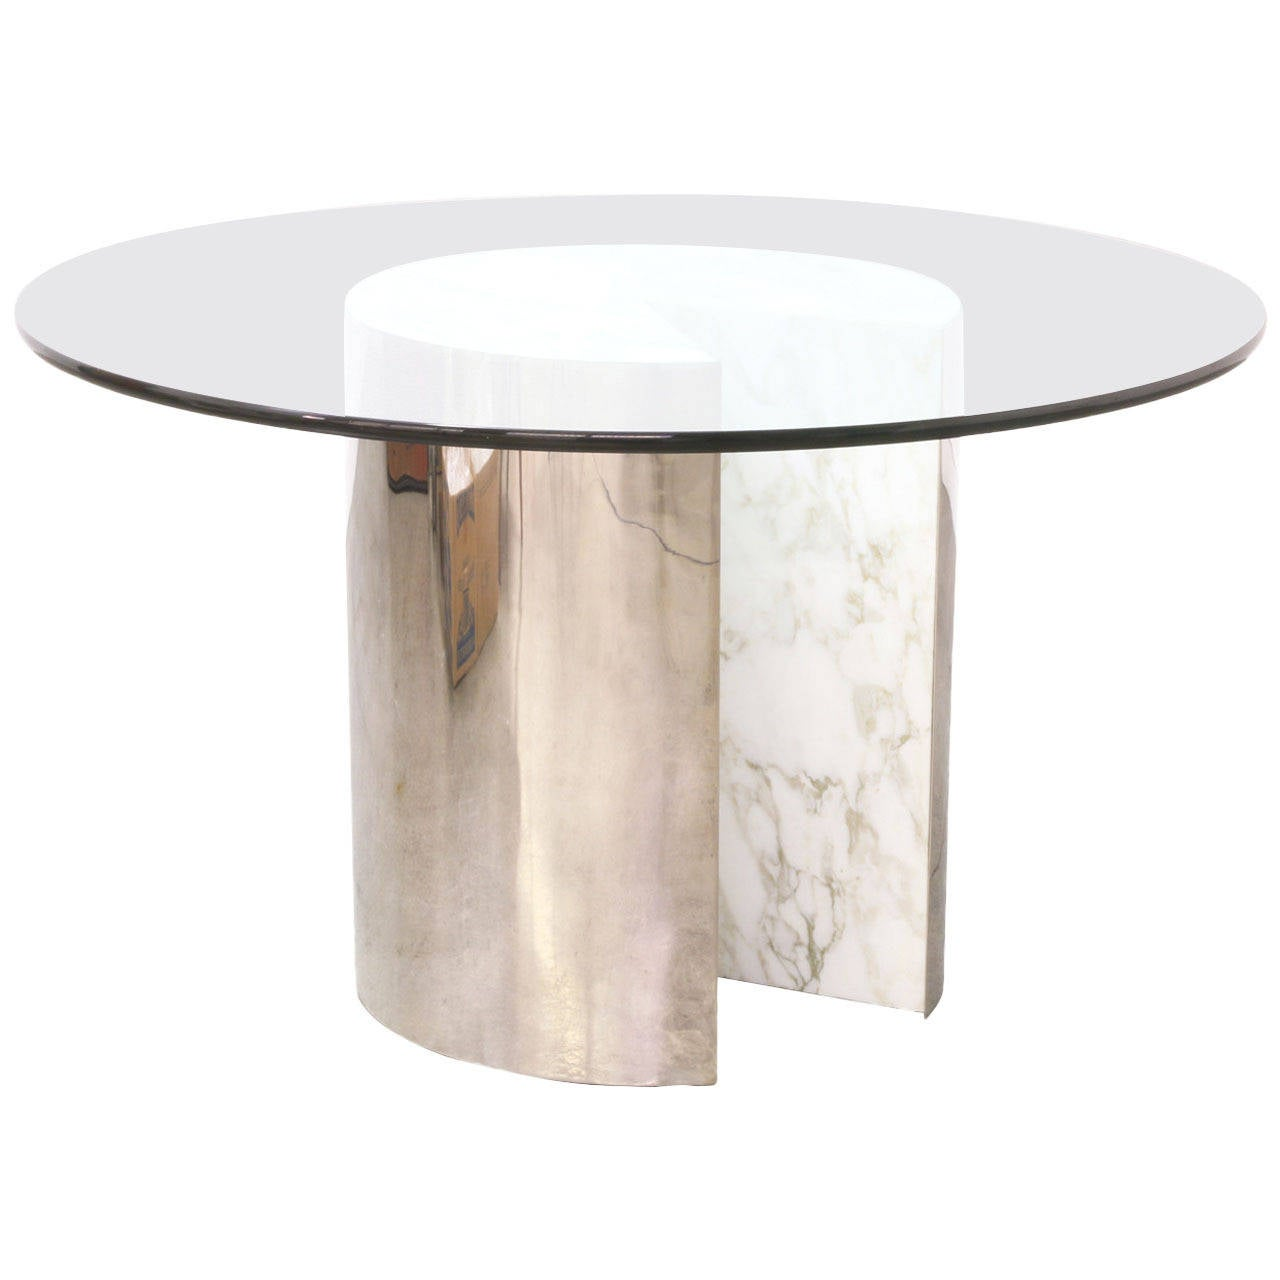 Vintage Stainless Steel and Carrera Marble Dining Table  : 2168242l from 1stdibs.com size 1280 x 1280 jpeg 58kB